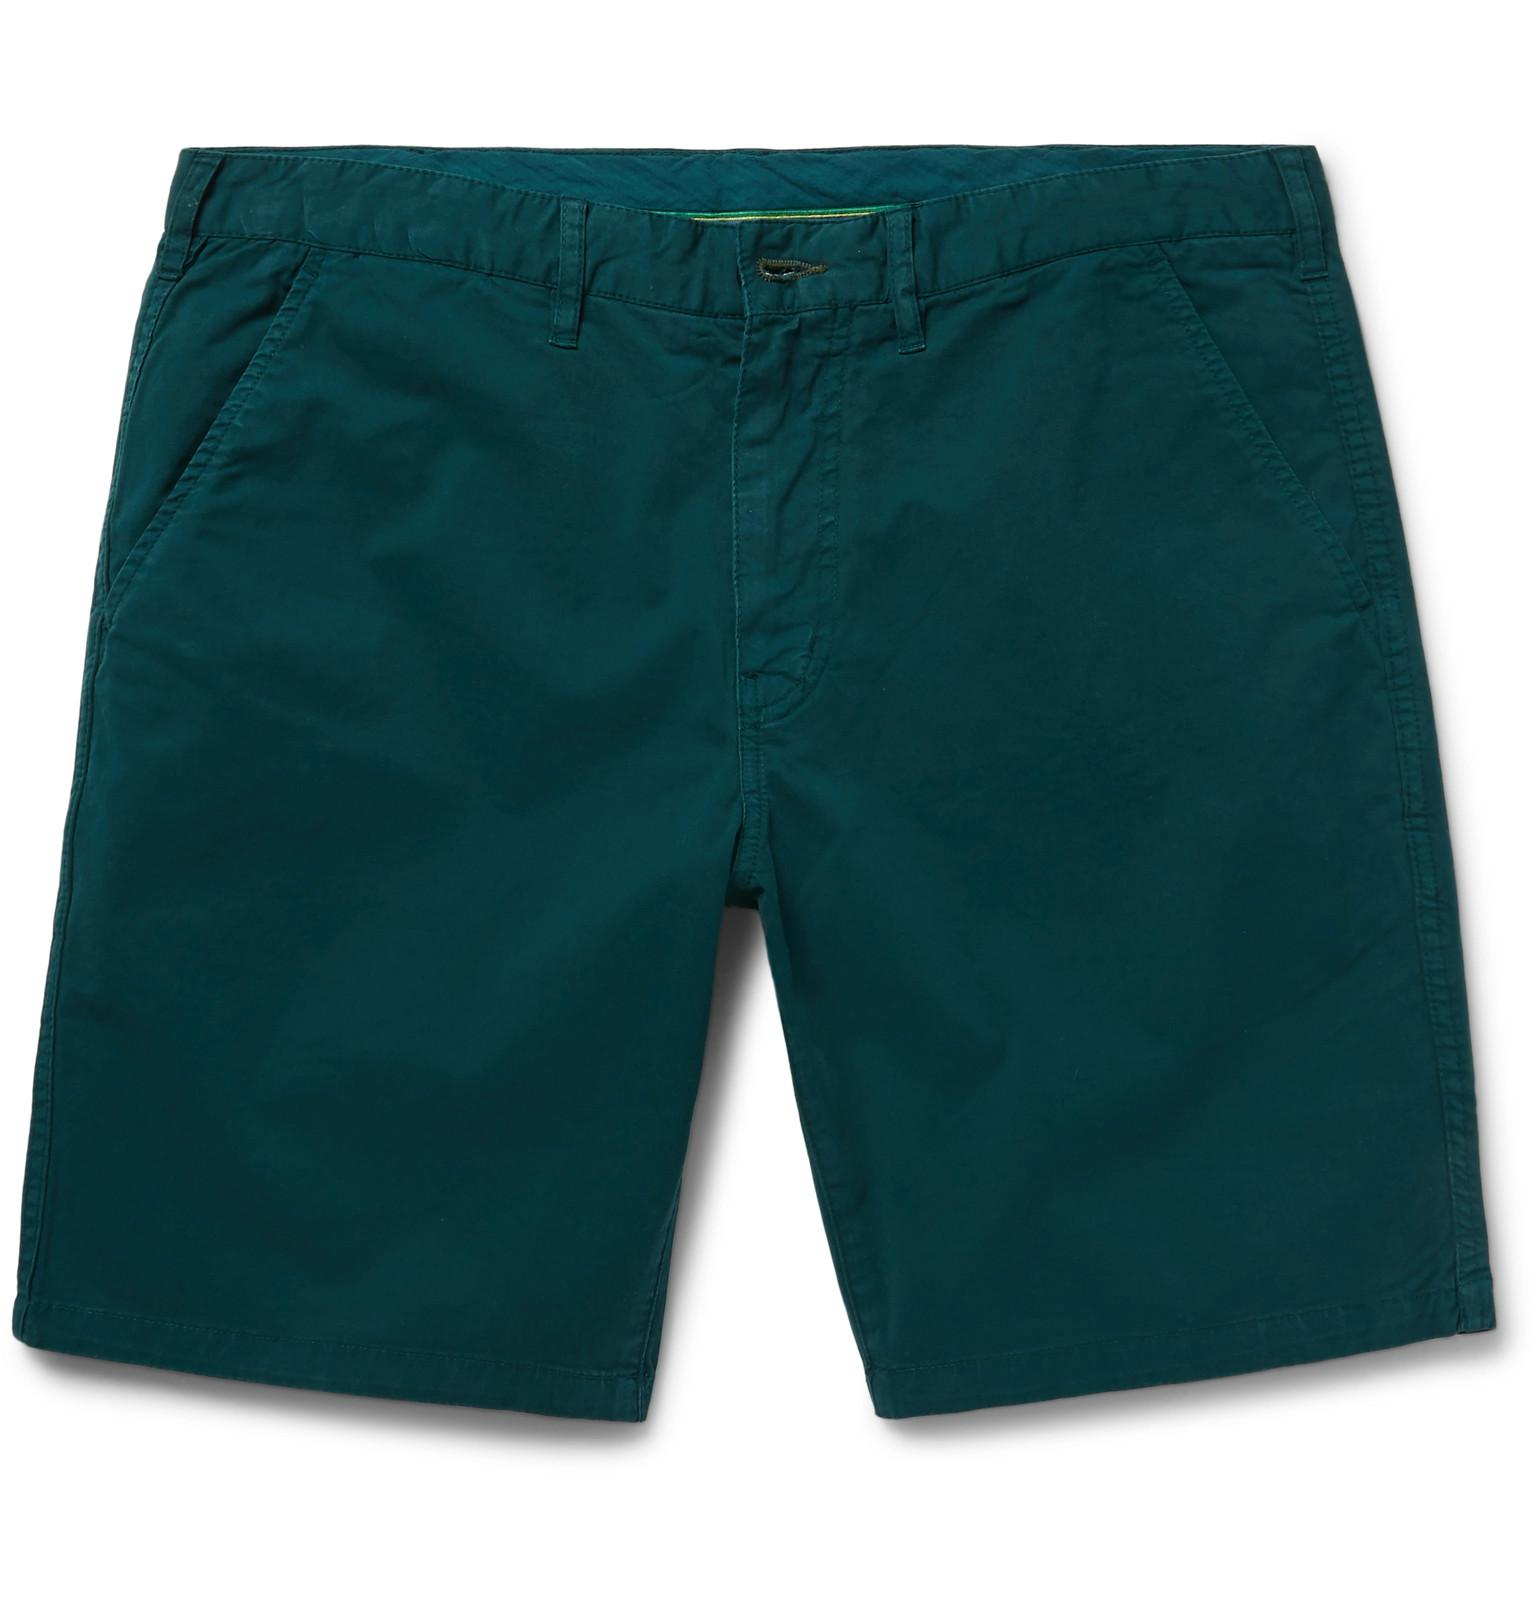 Paul Smith Slim-fit Stretch Cotton-twill Shorts - Green FRK8Qqps